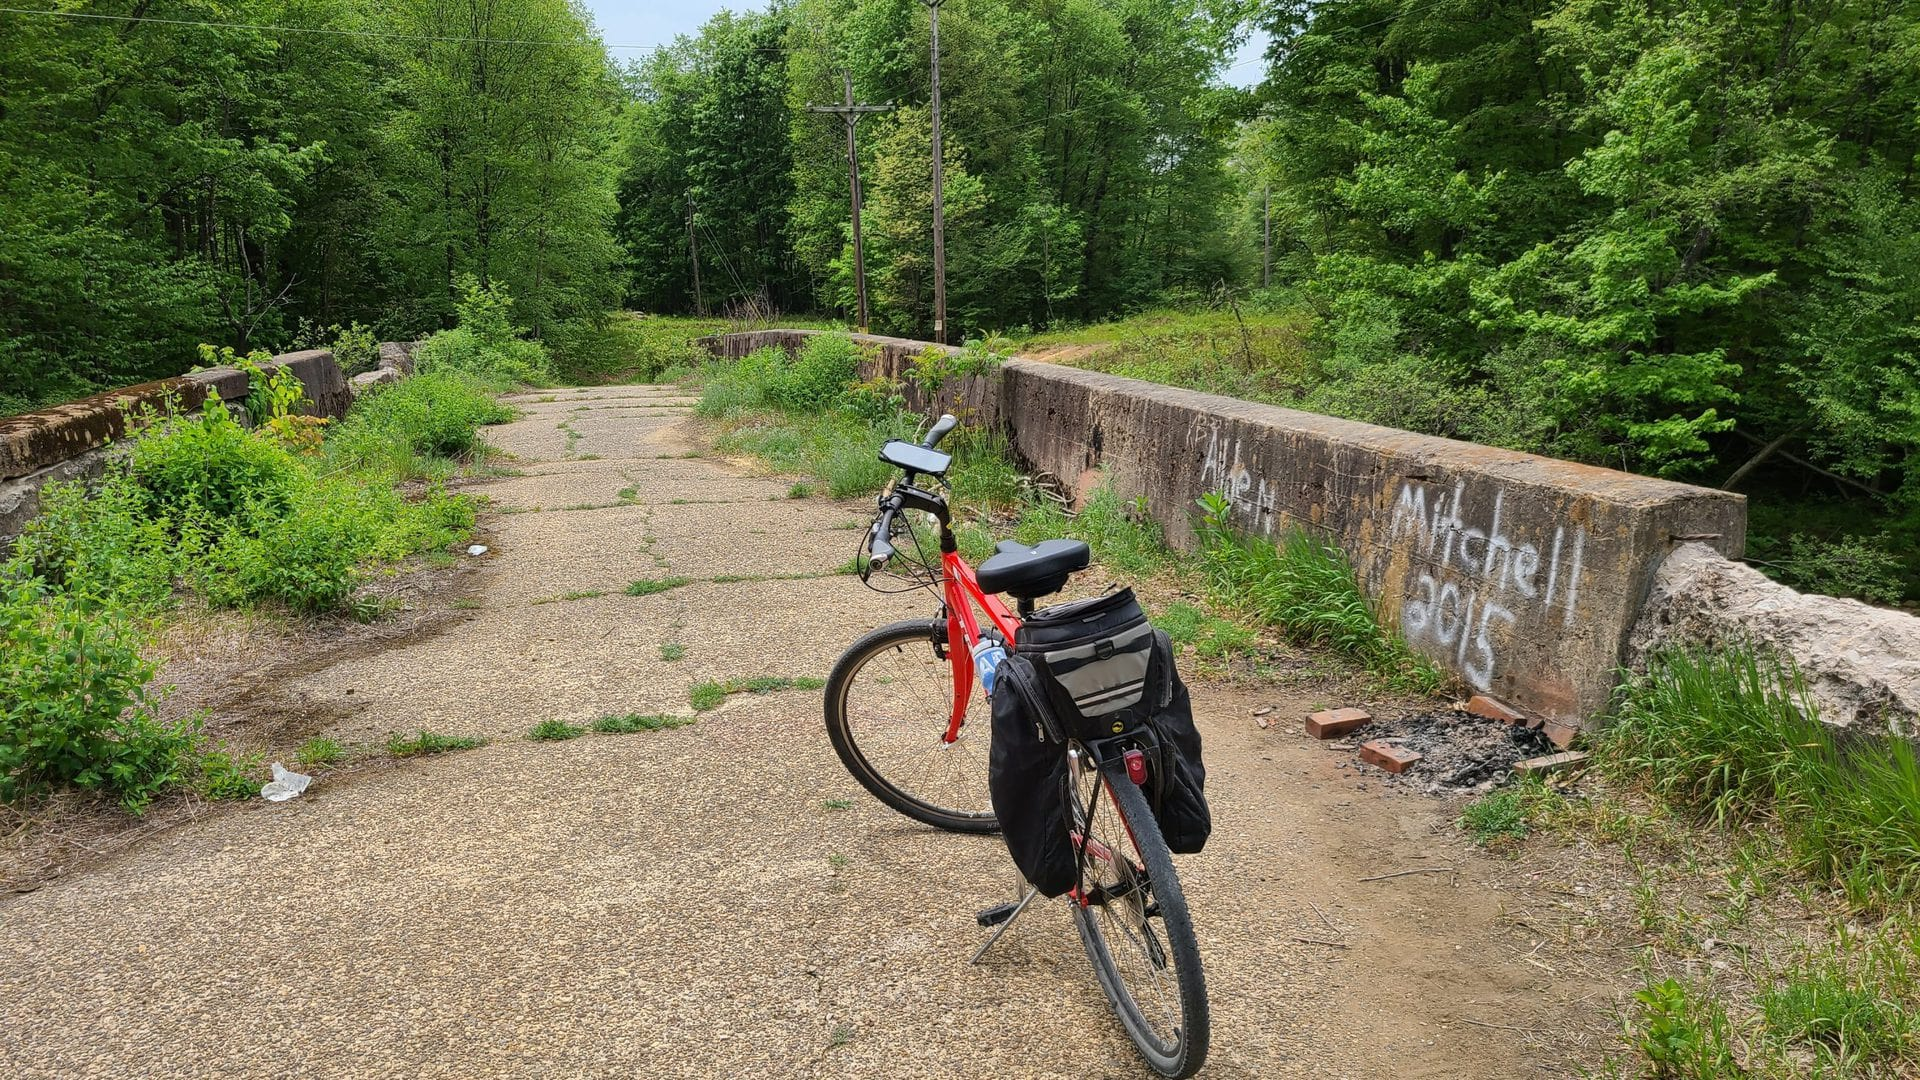 A red bike sits in the middle of a decaying concrete bridge, facing a clearing in the woods.